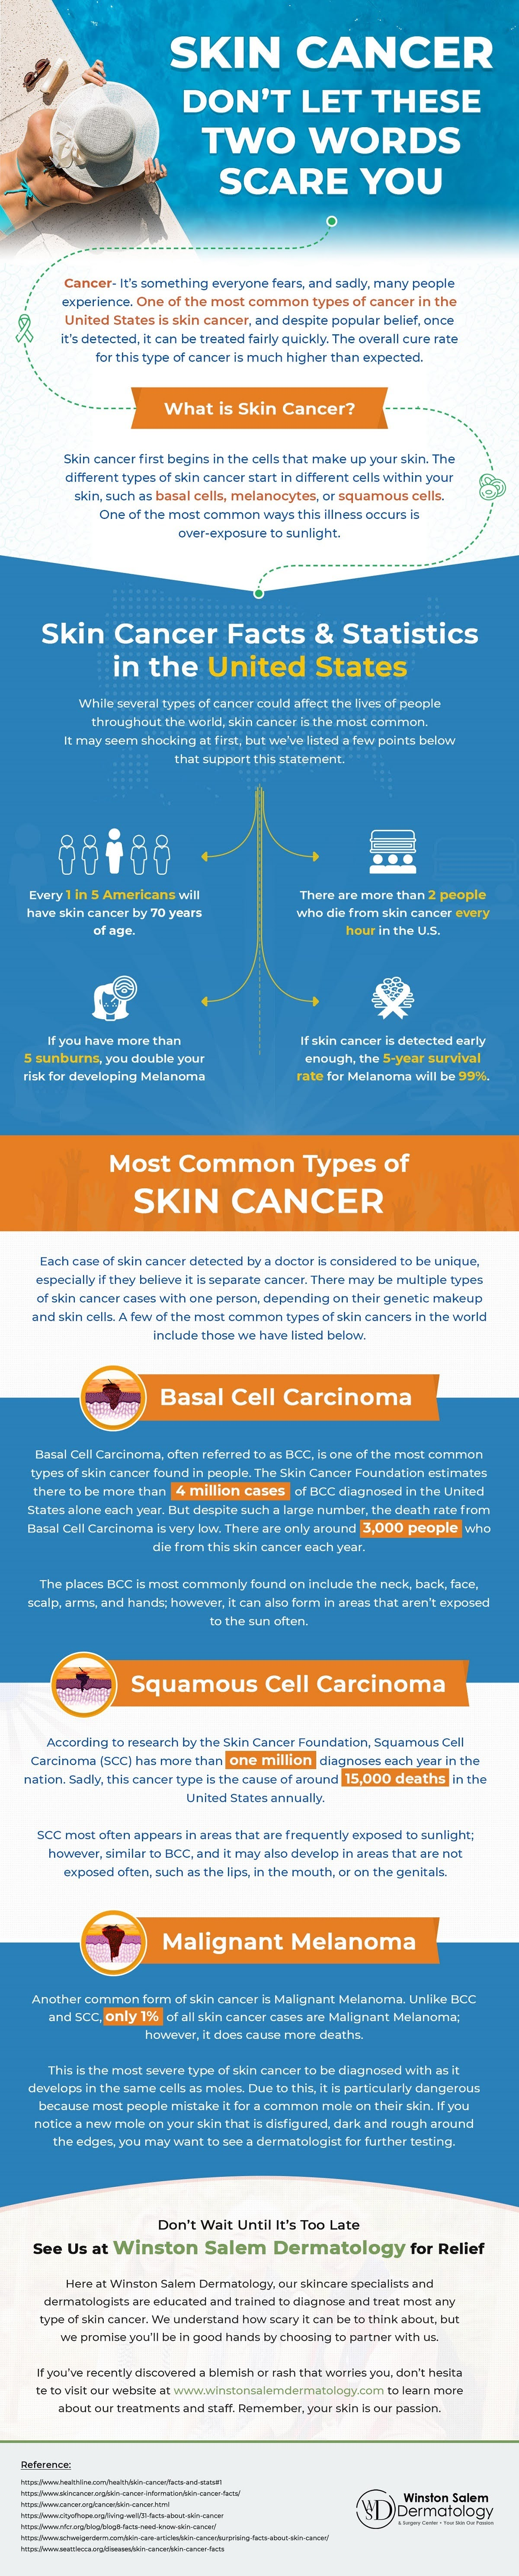 skin-cancer-dont-let-these-two-words-scare-you-infographic